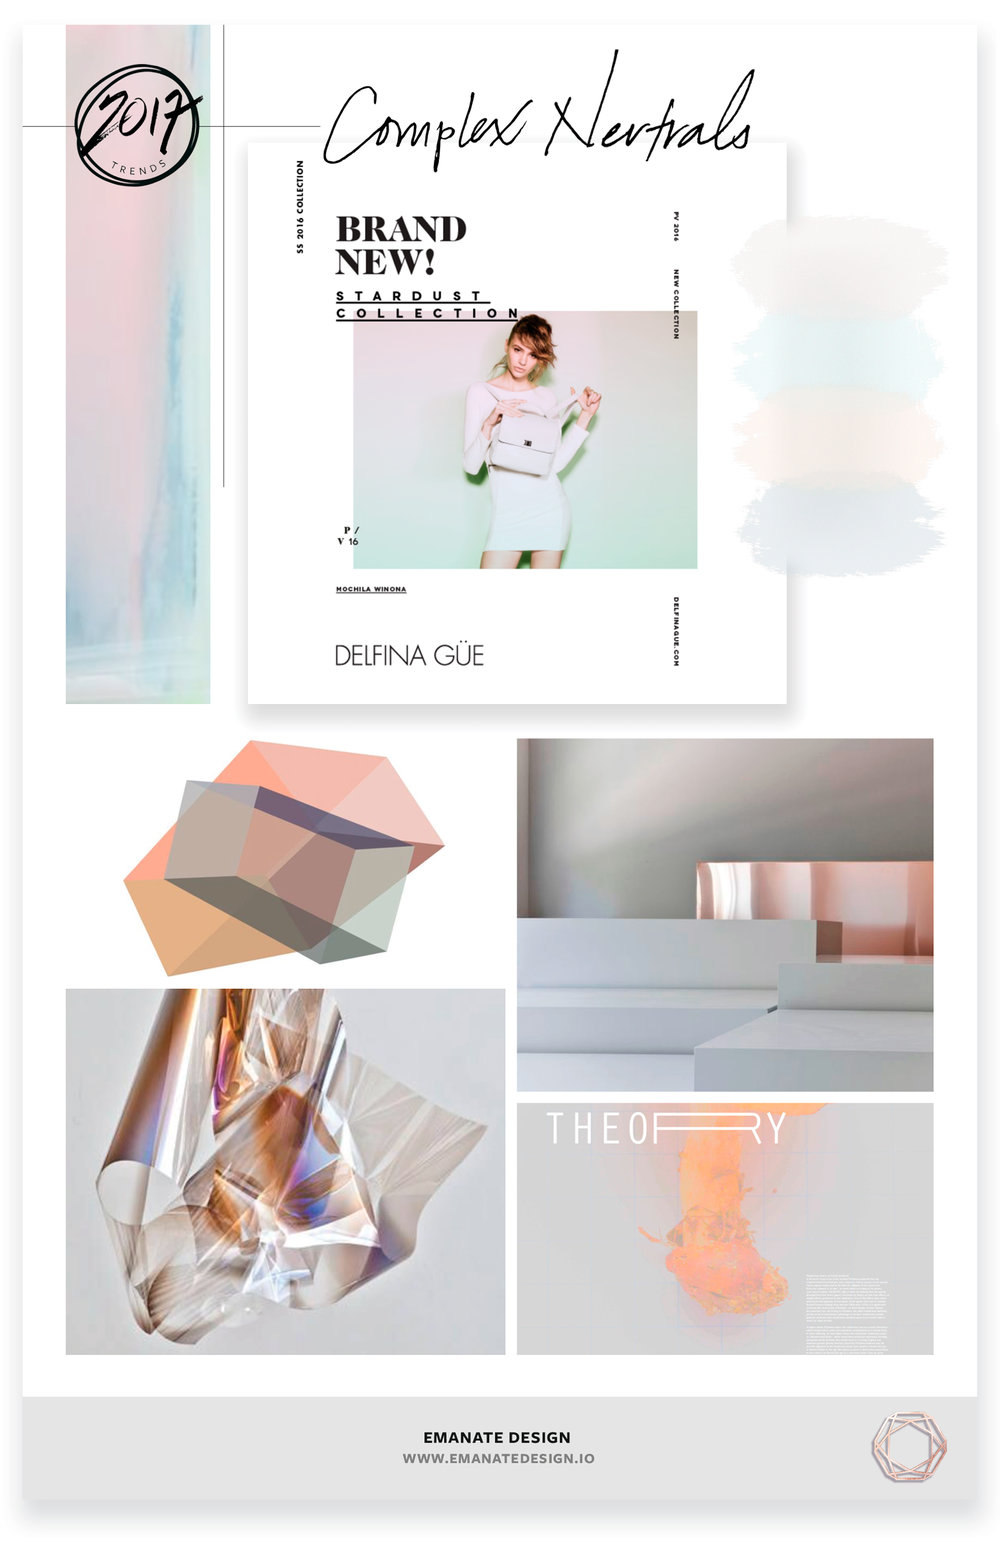 2017 Trends / Complex Neutrals / Emanate Design  Clockwise from Left:  Holographic - Matt McClune ,  Editorial ,  Geometric Room ,  Theory ,  Acetate - Larry Bell ,  Geometric Graphic